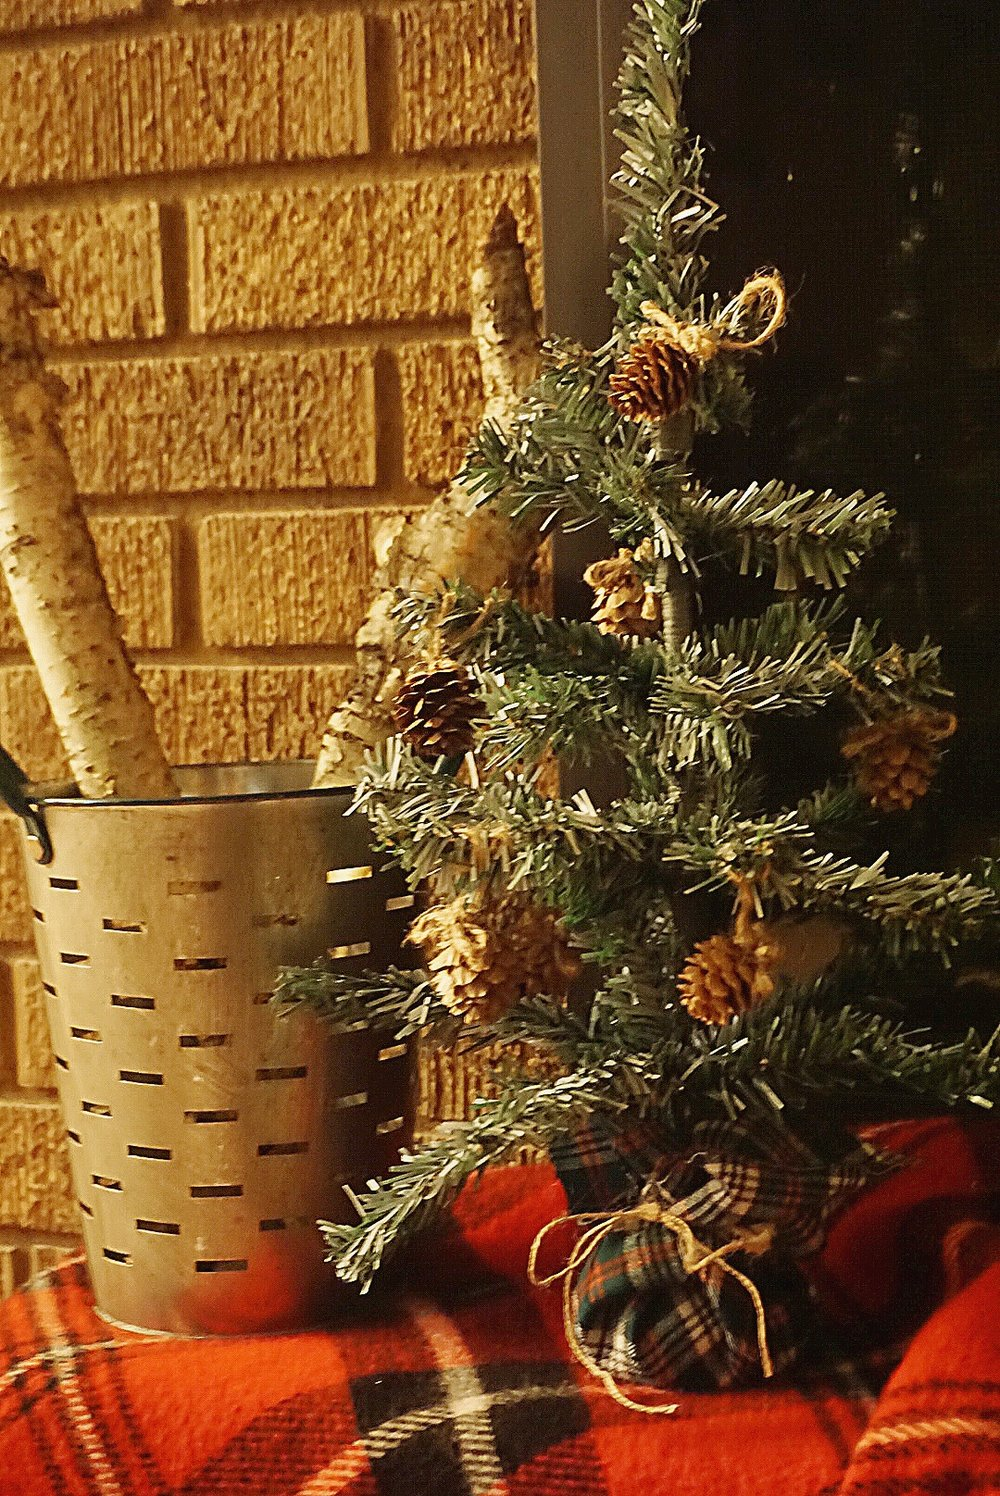 Adding Walmart pine cones to a spray painted Christmas tree gives it a farmhouse rustic look.